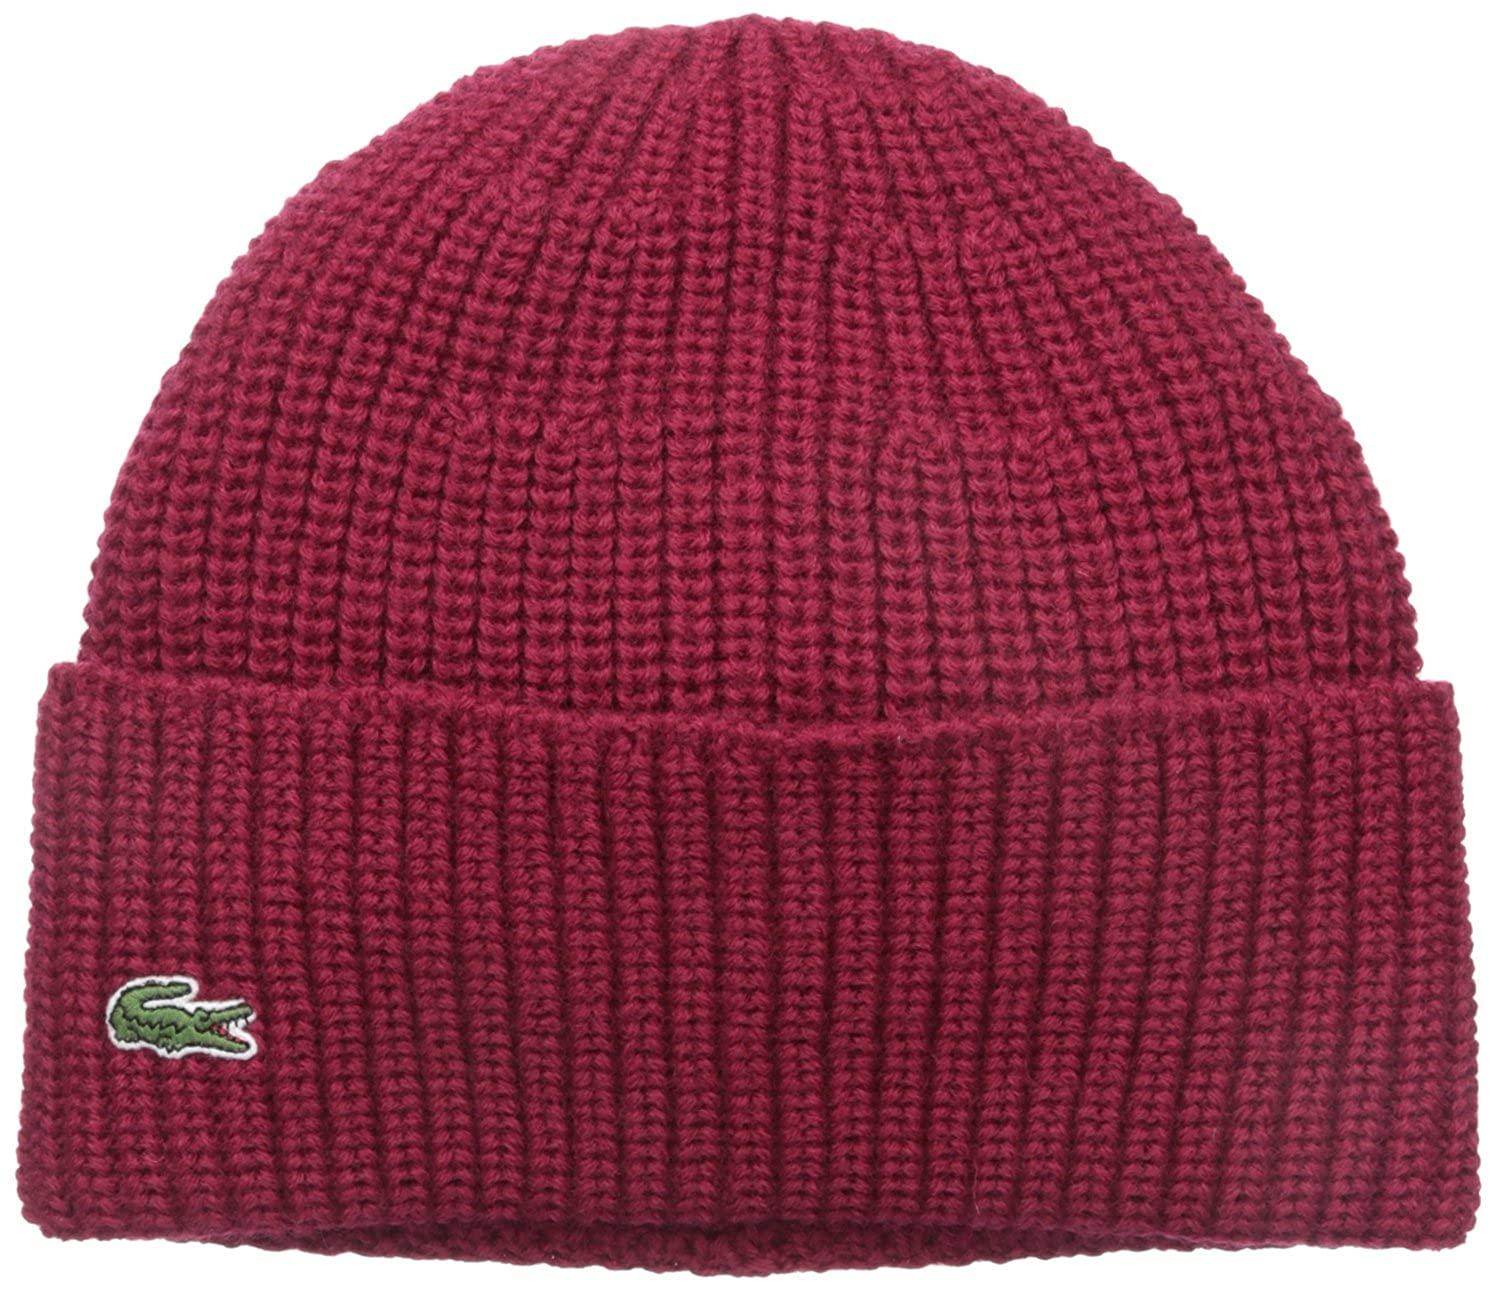 Lacoste Mens Rib Knitted Contrast Beanie